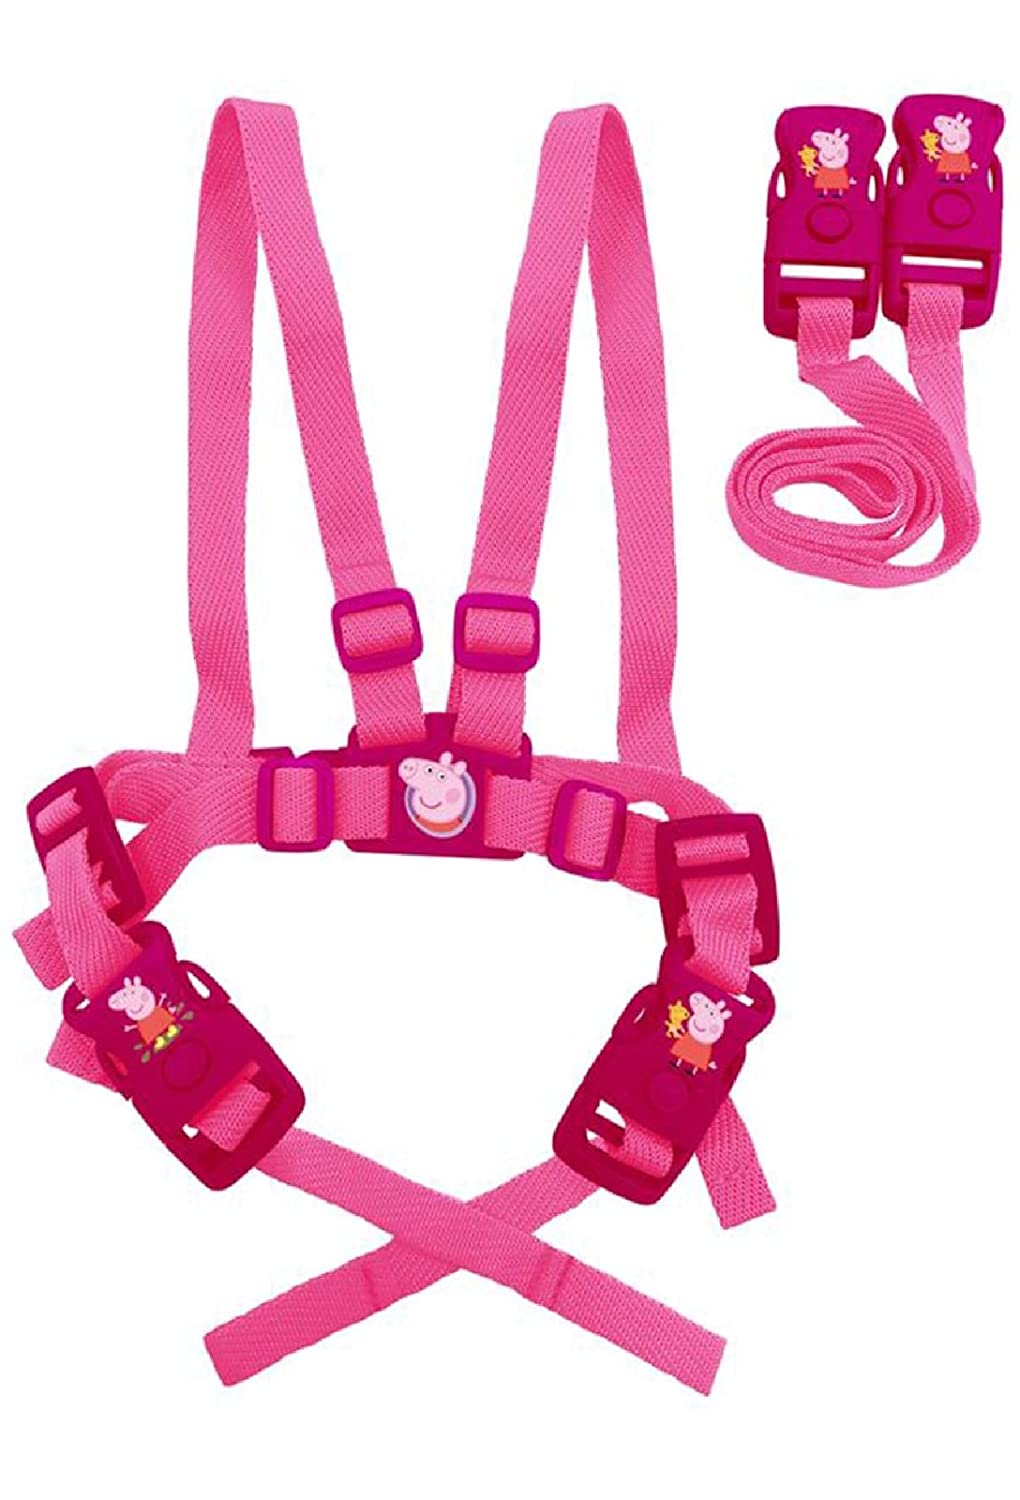 Alligator Girls Peppa Pig Safety Harness and Travel Reins - Pink